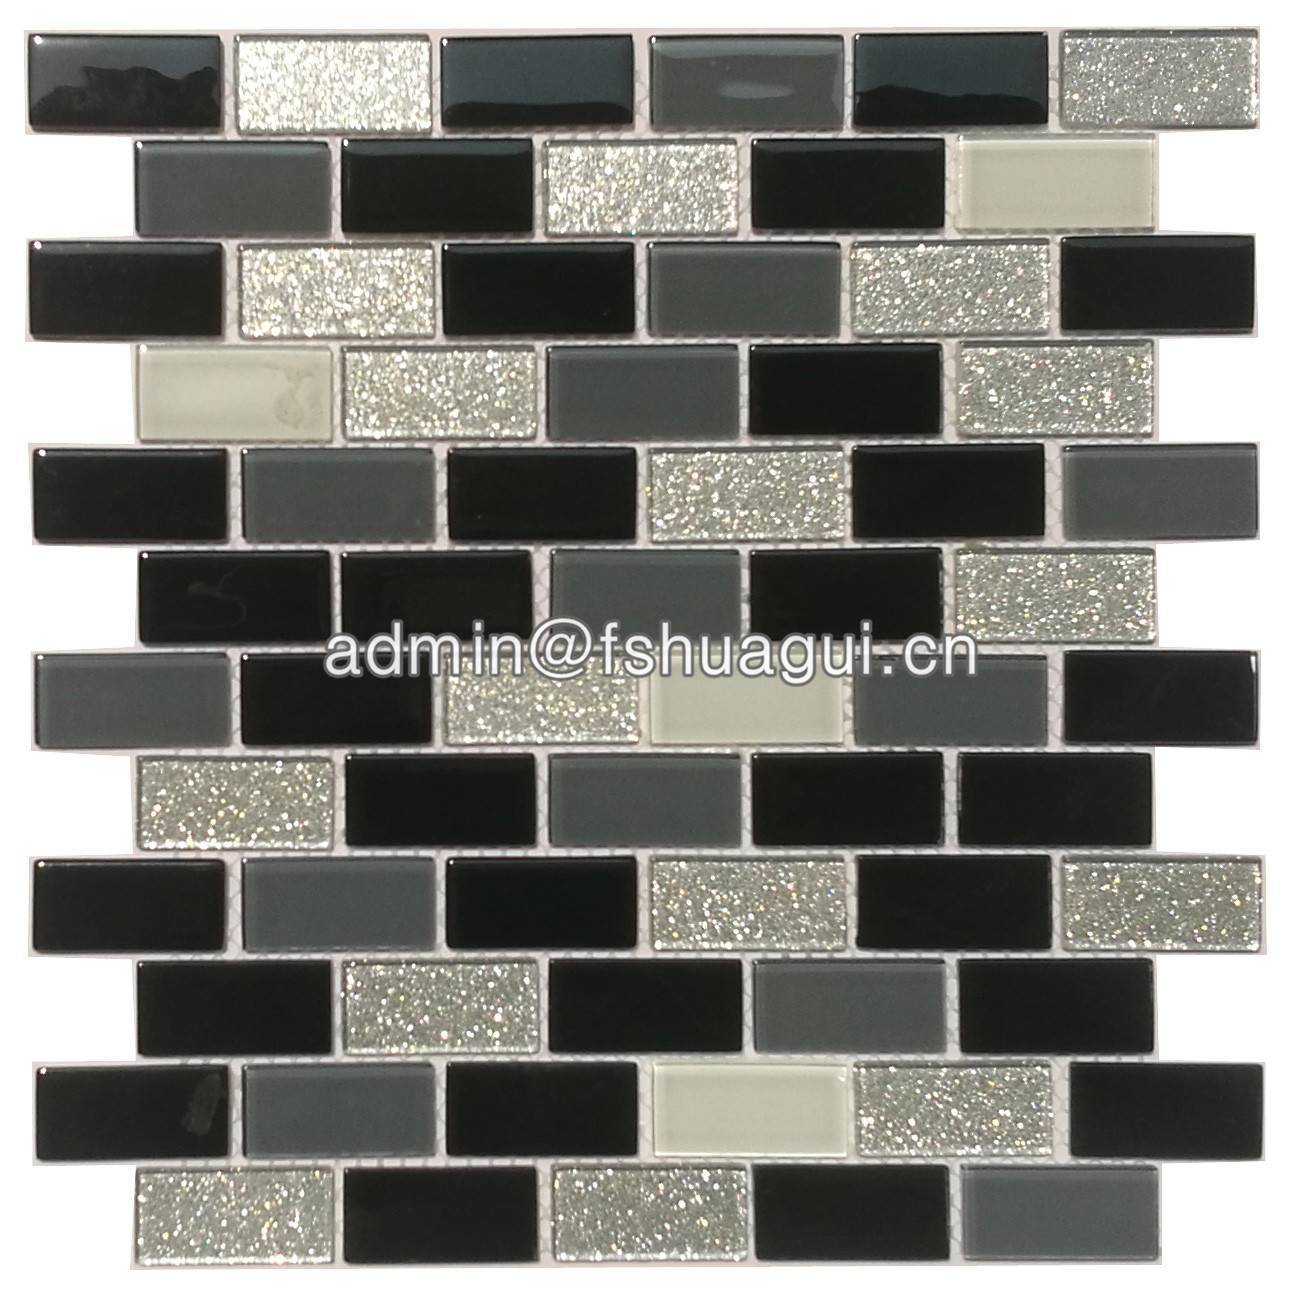 Silver black and white glass mosaic tile for kitchen backsplash HG-15-17